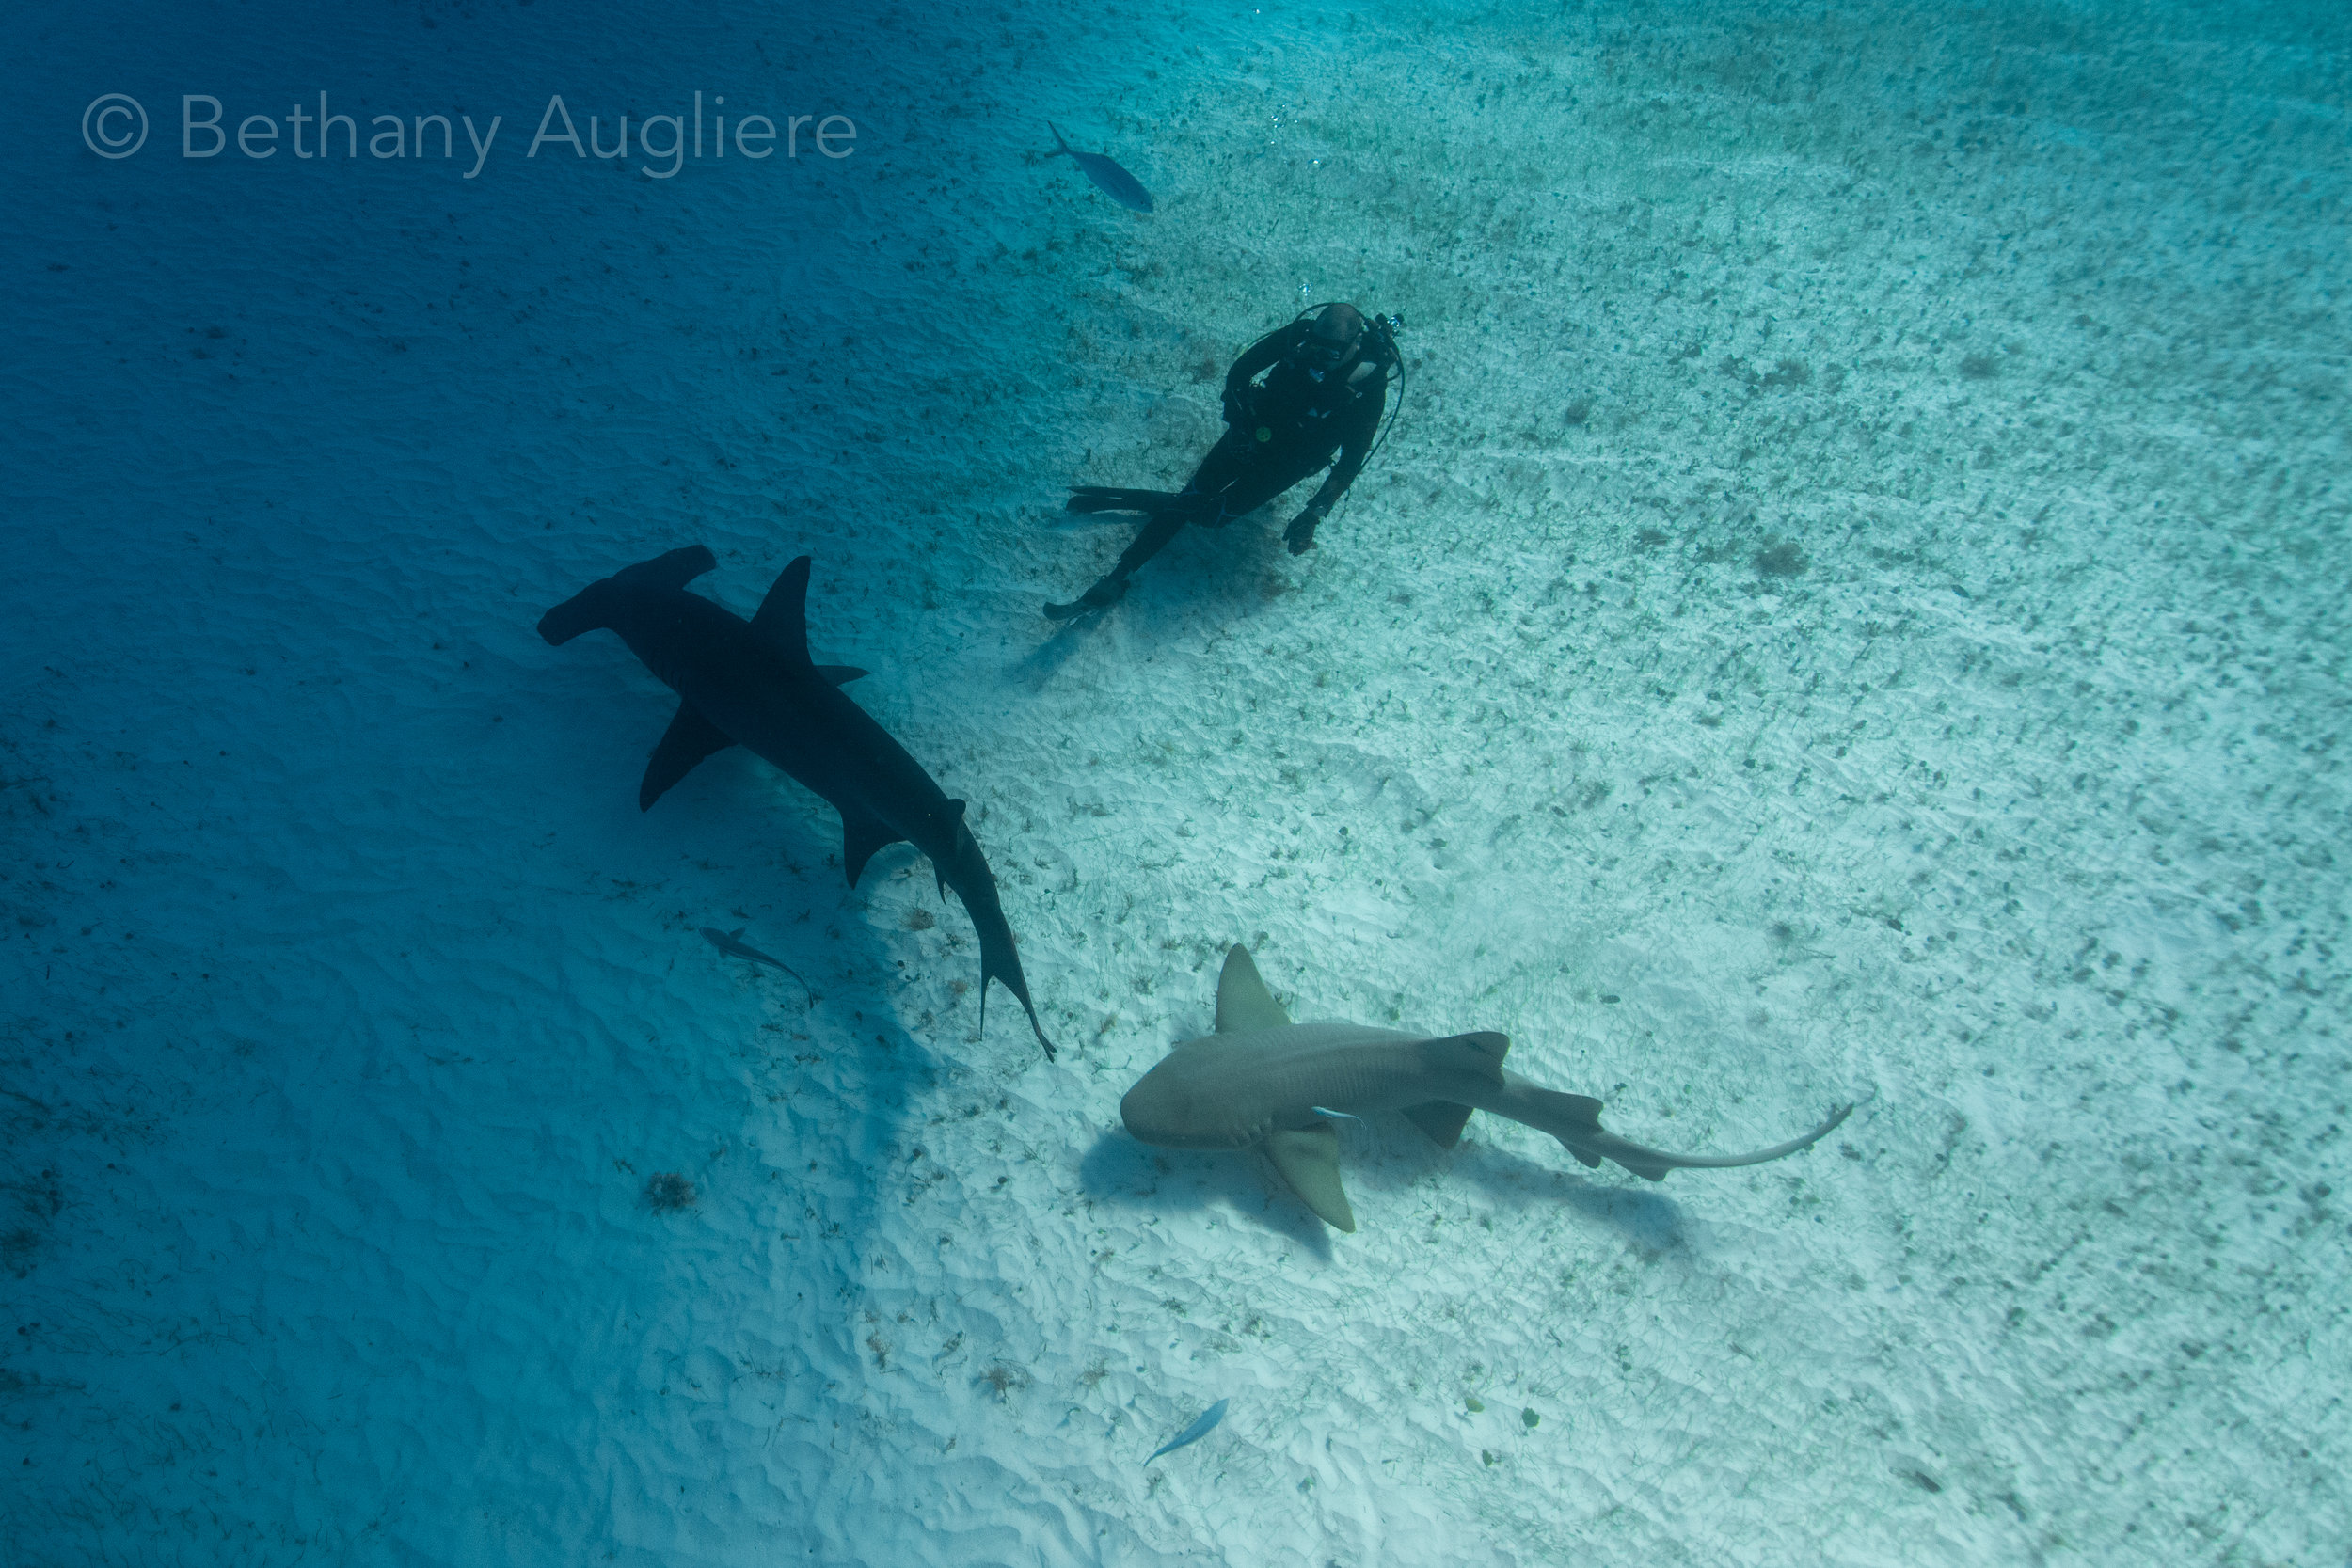 Sharks and Diver